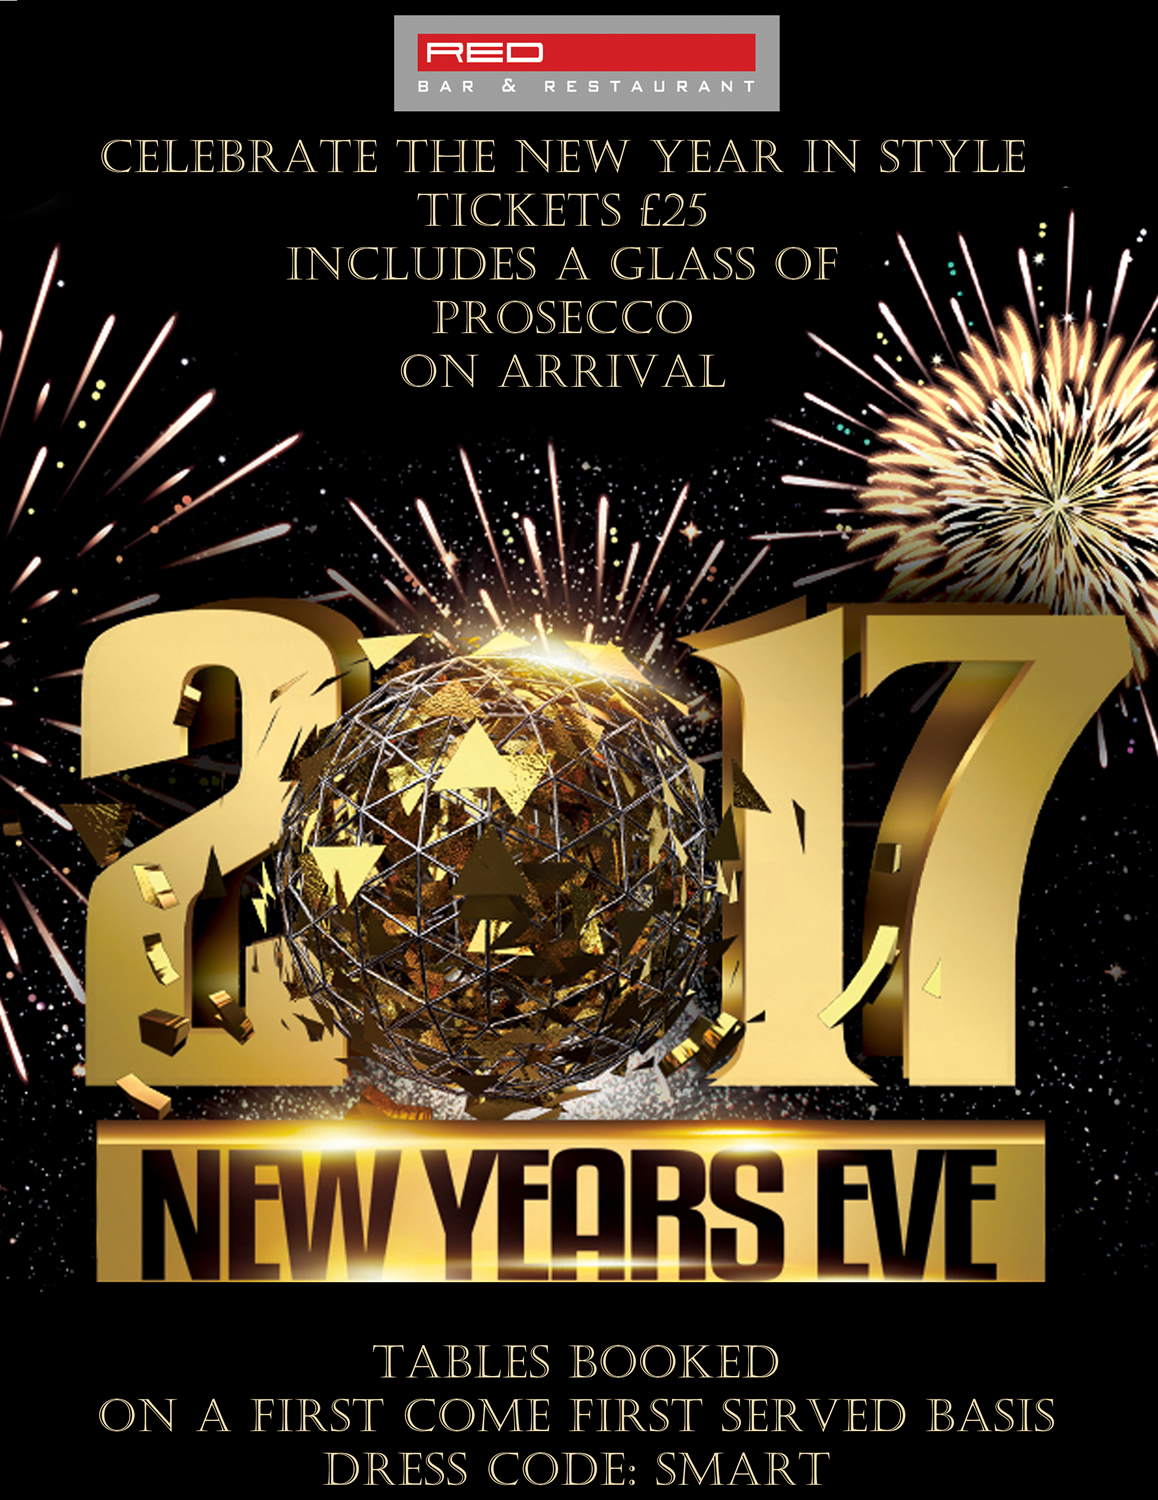 New Years Eve Party at Red Bar & Restaurant - We promise to provide an outstanding party as a thank you for your loyal custom throughout the year!